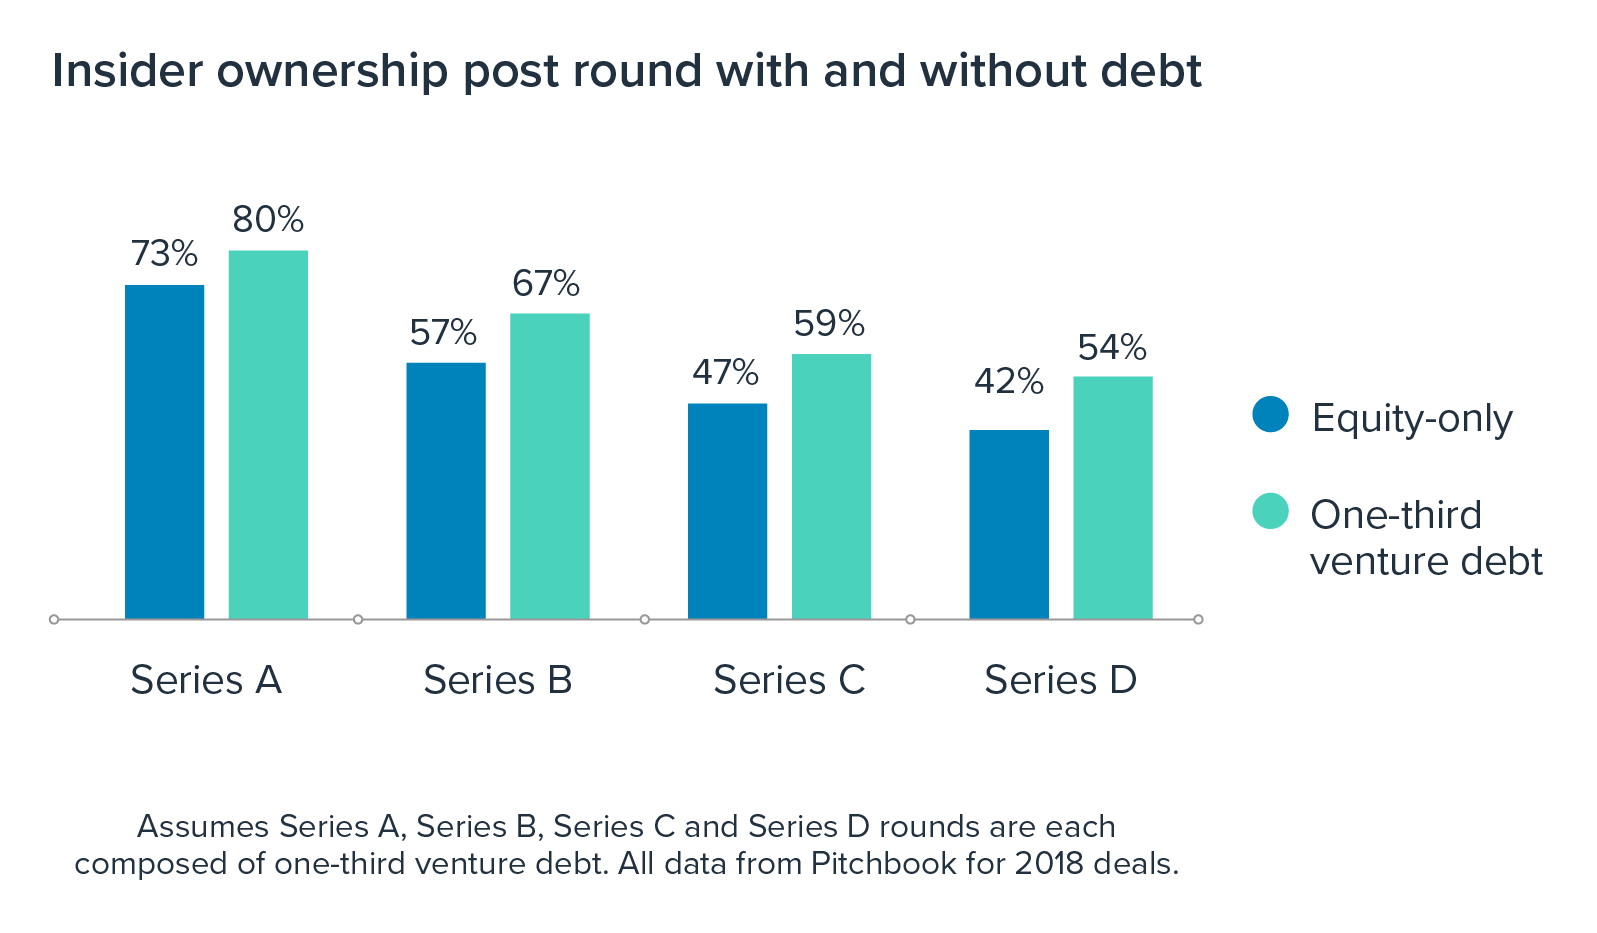 Insider ownership post-round with and without venture debt